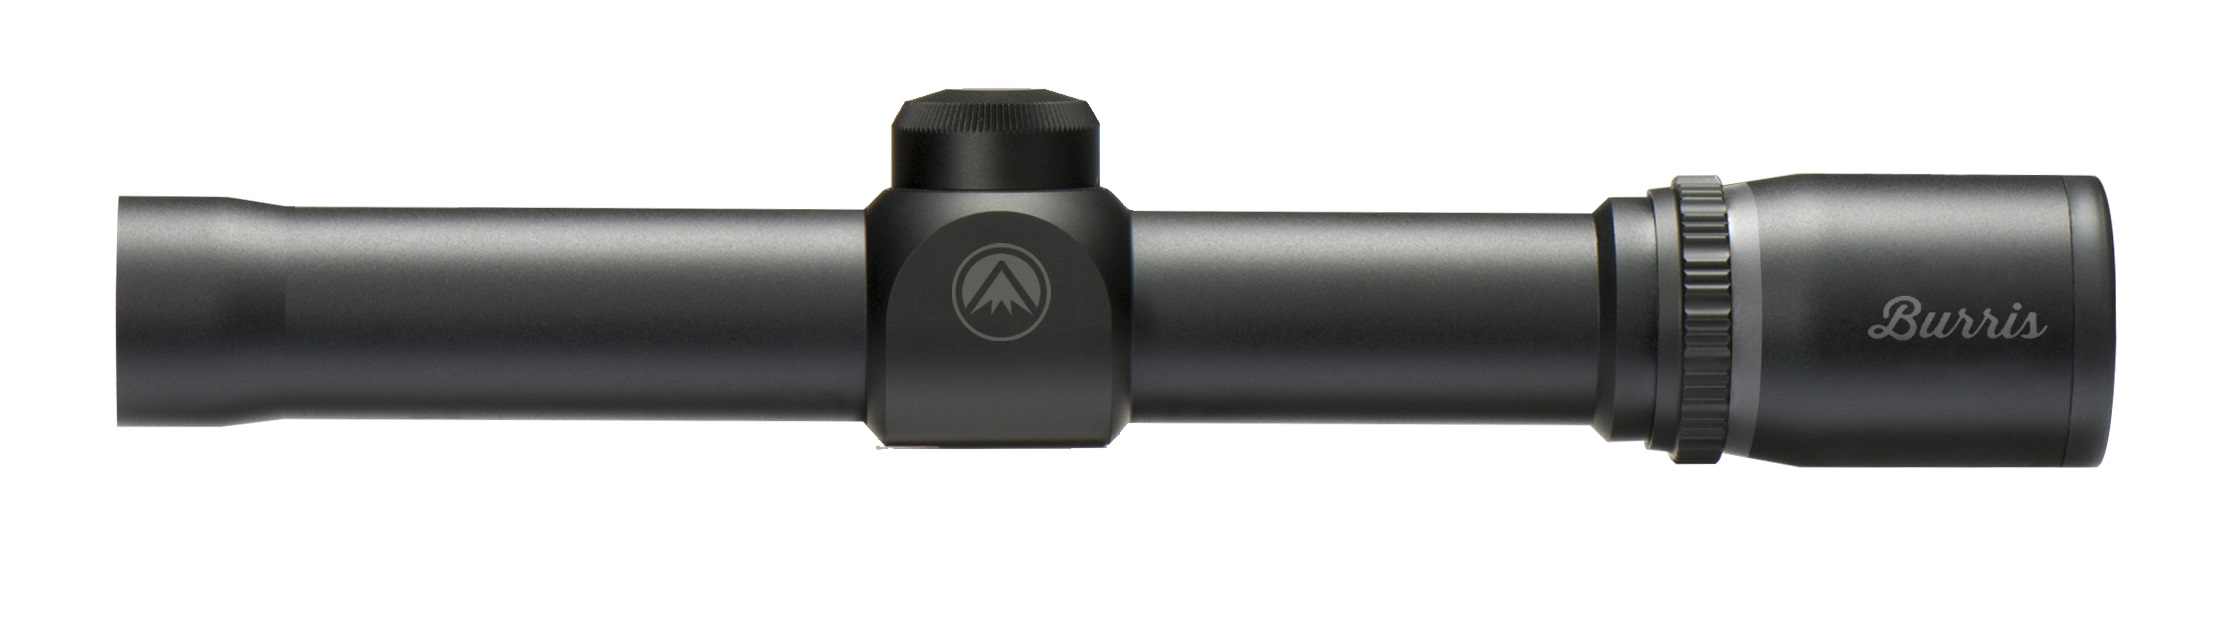 Burris Optics SCOUT